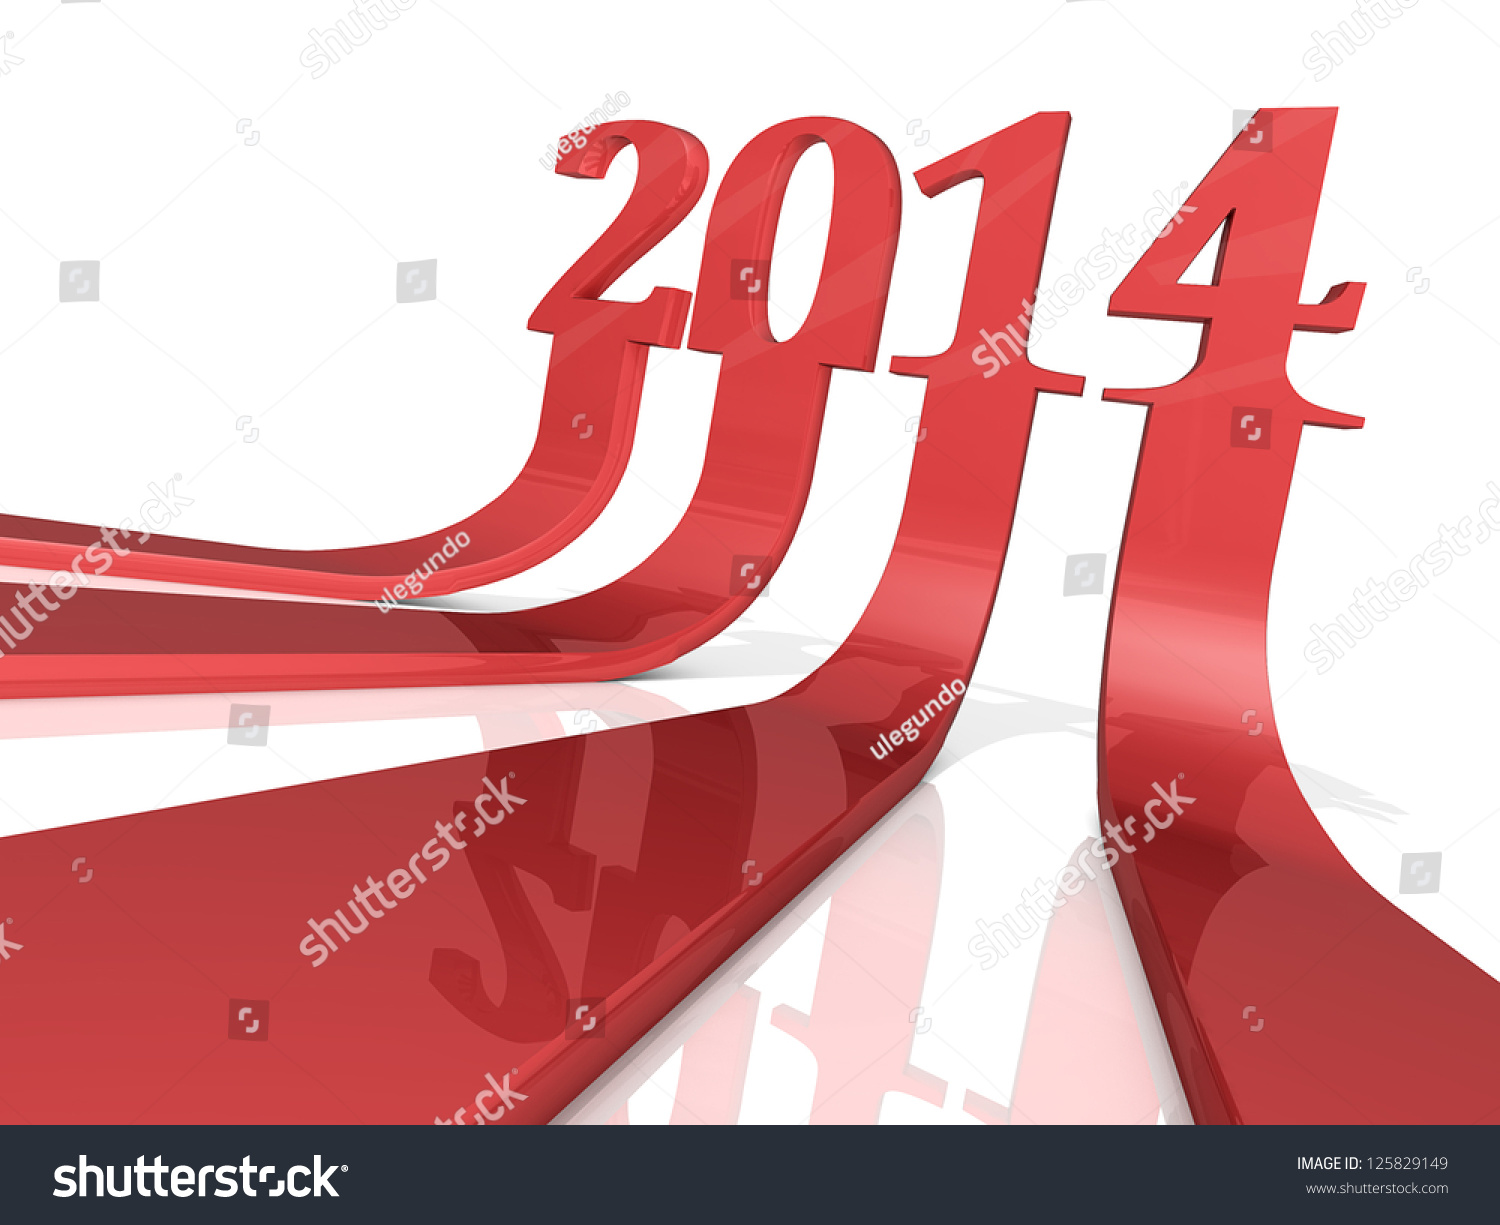 The Numbers  U0026quot 2014 U0026quot  As Three Dimensional Arrows  Stock